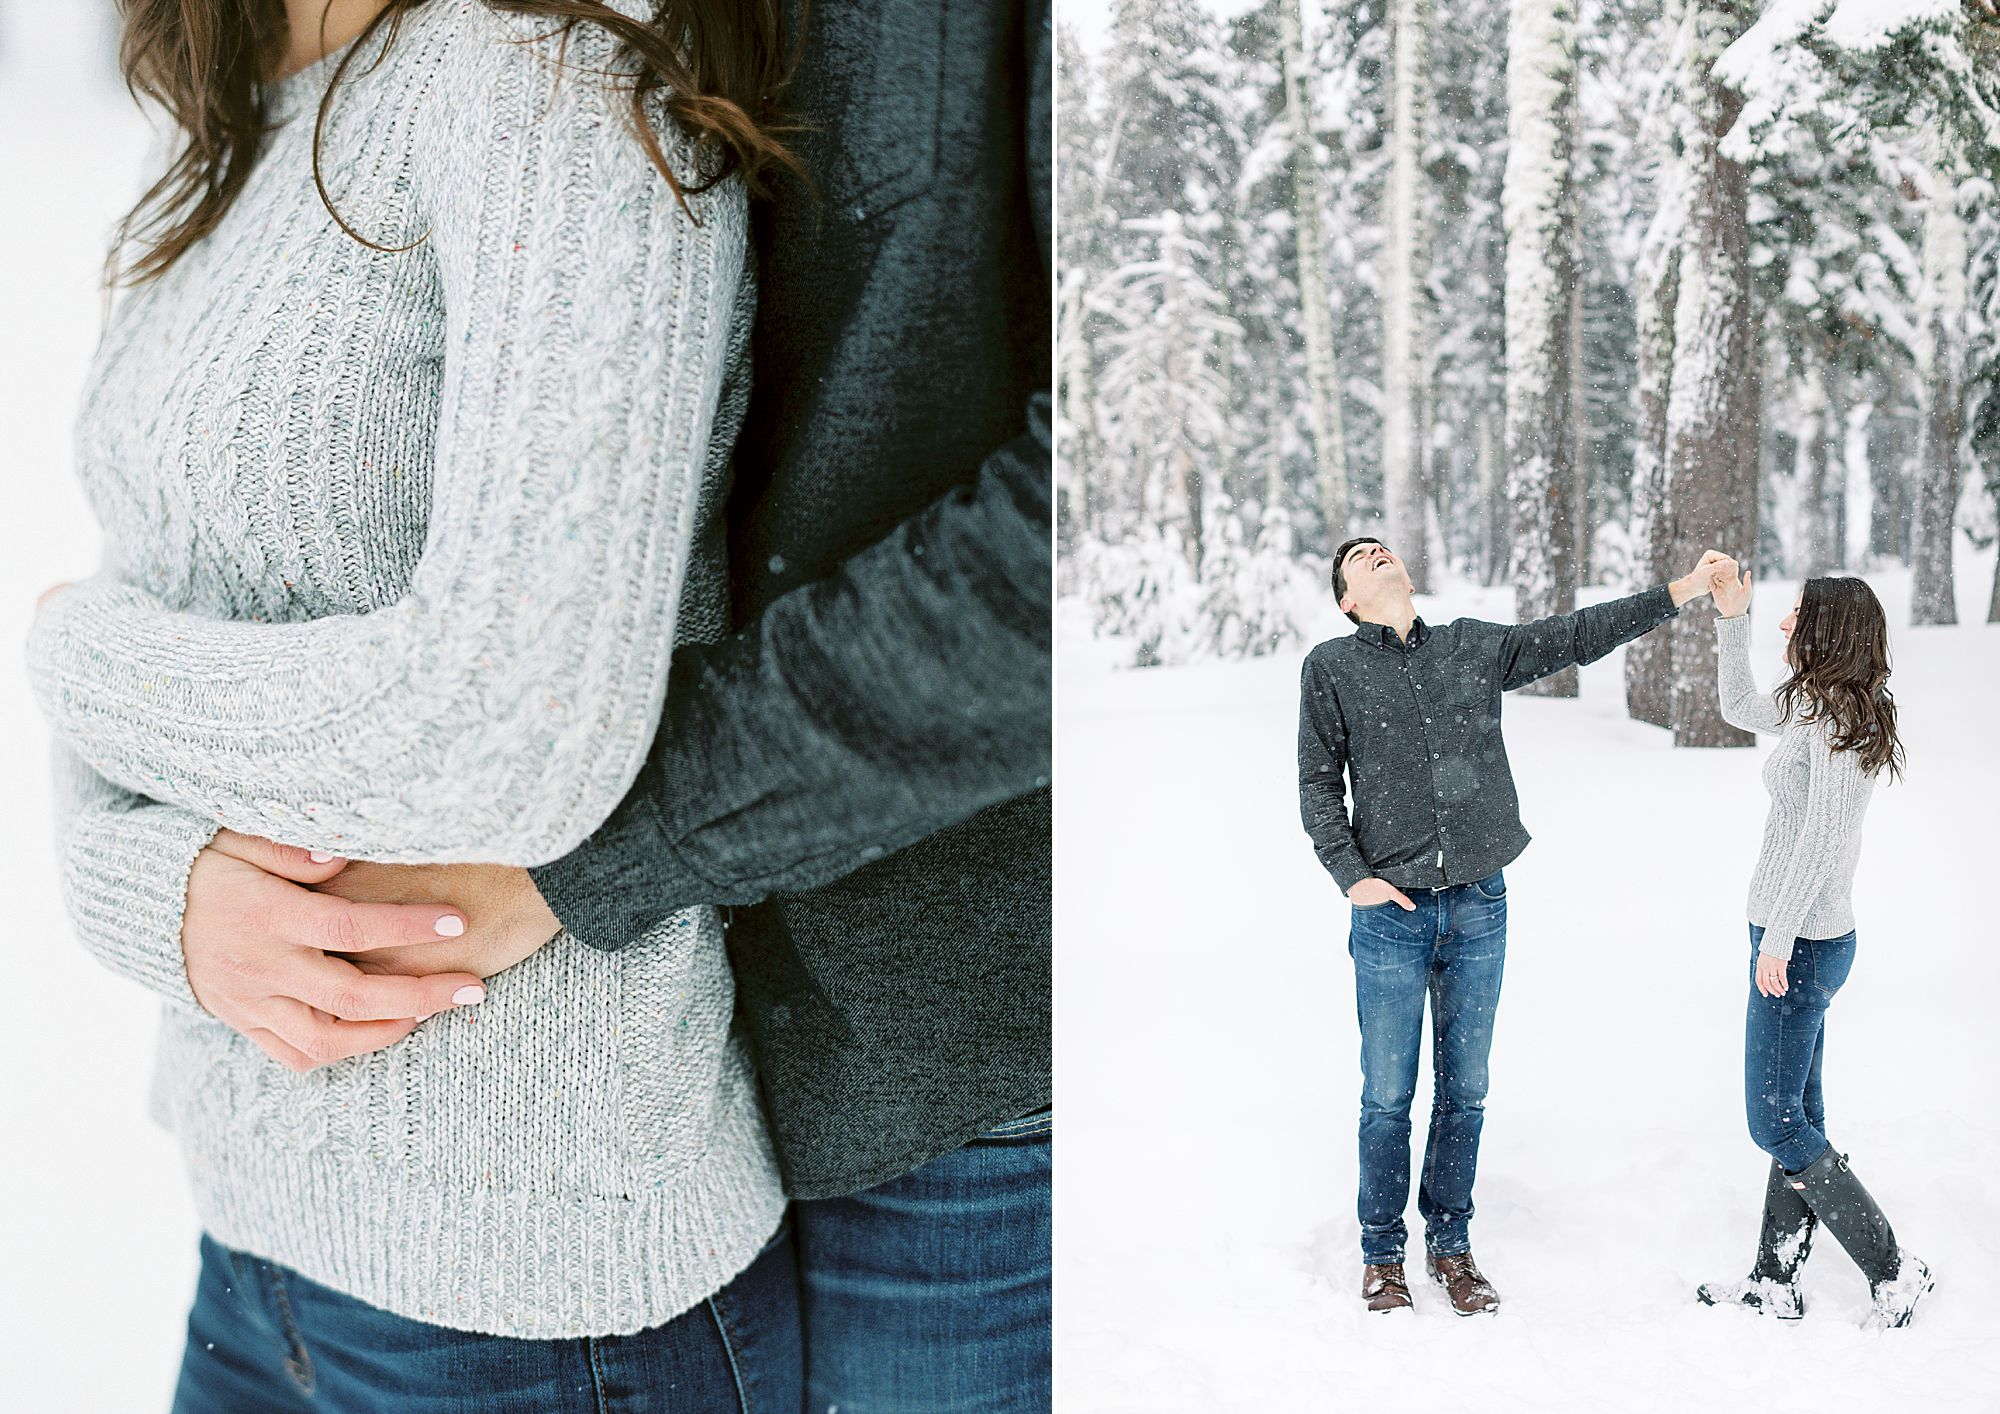 Snowy Tahoe Engagement Session - Alex and Kevin - Ashley Baumgartner - Tahoe Engagement Session - Tahoe Wedding Photographer - Tahoe Engagement Photos - Snow Engagement Photos_0013.jpg